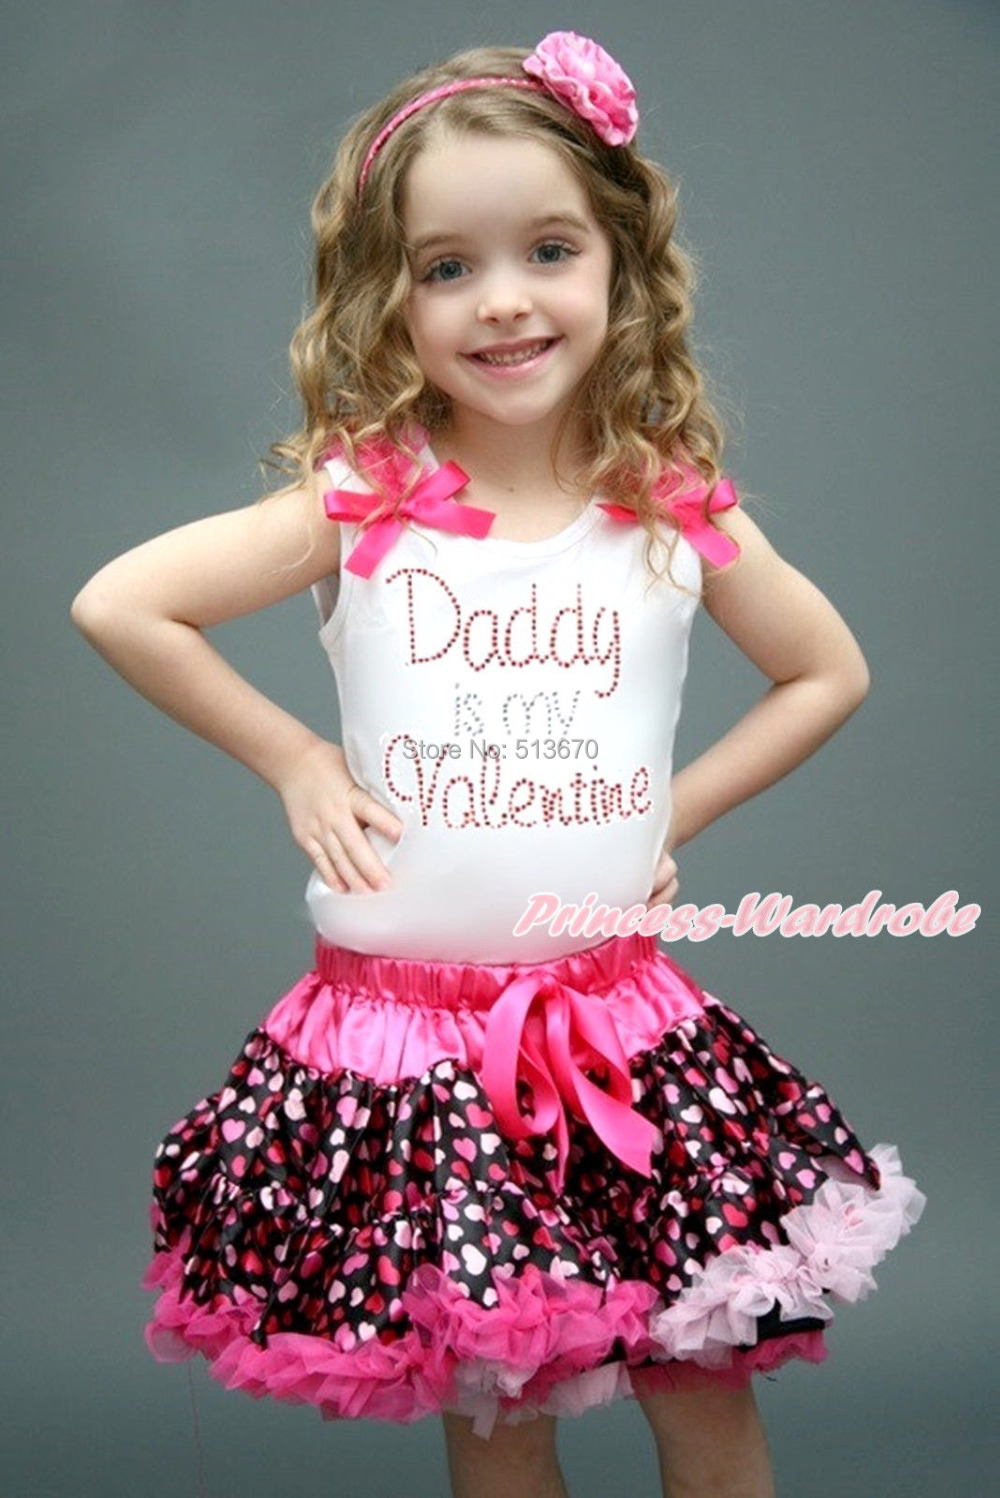 Rhinestone Daddy Is My Valentine White Top Hot Pink Heart Pettiskirt Set 1-8Year MAPSA0164 holika holika holika holika ho009lwelh81